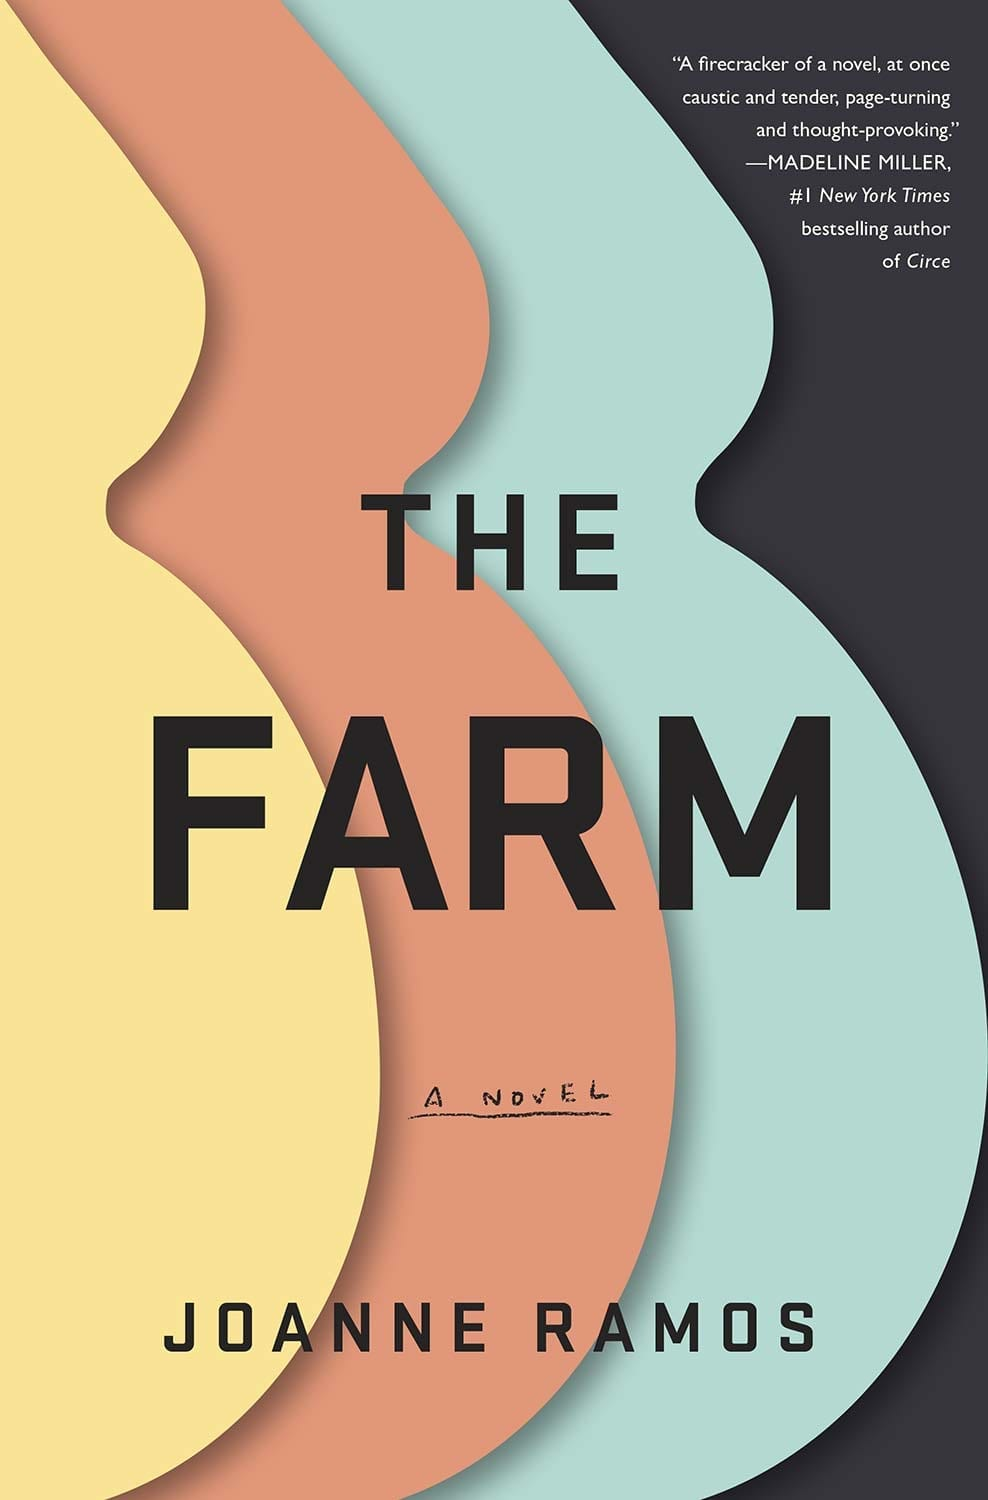 The Farm by Joanne Ramos is a story of women trying to make their way in life. By commercializing childbirth.  #Books #Fiction #BookReviews #MassConsternation #TheFarm #JoanneRamos